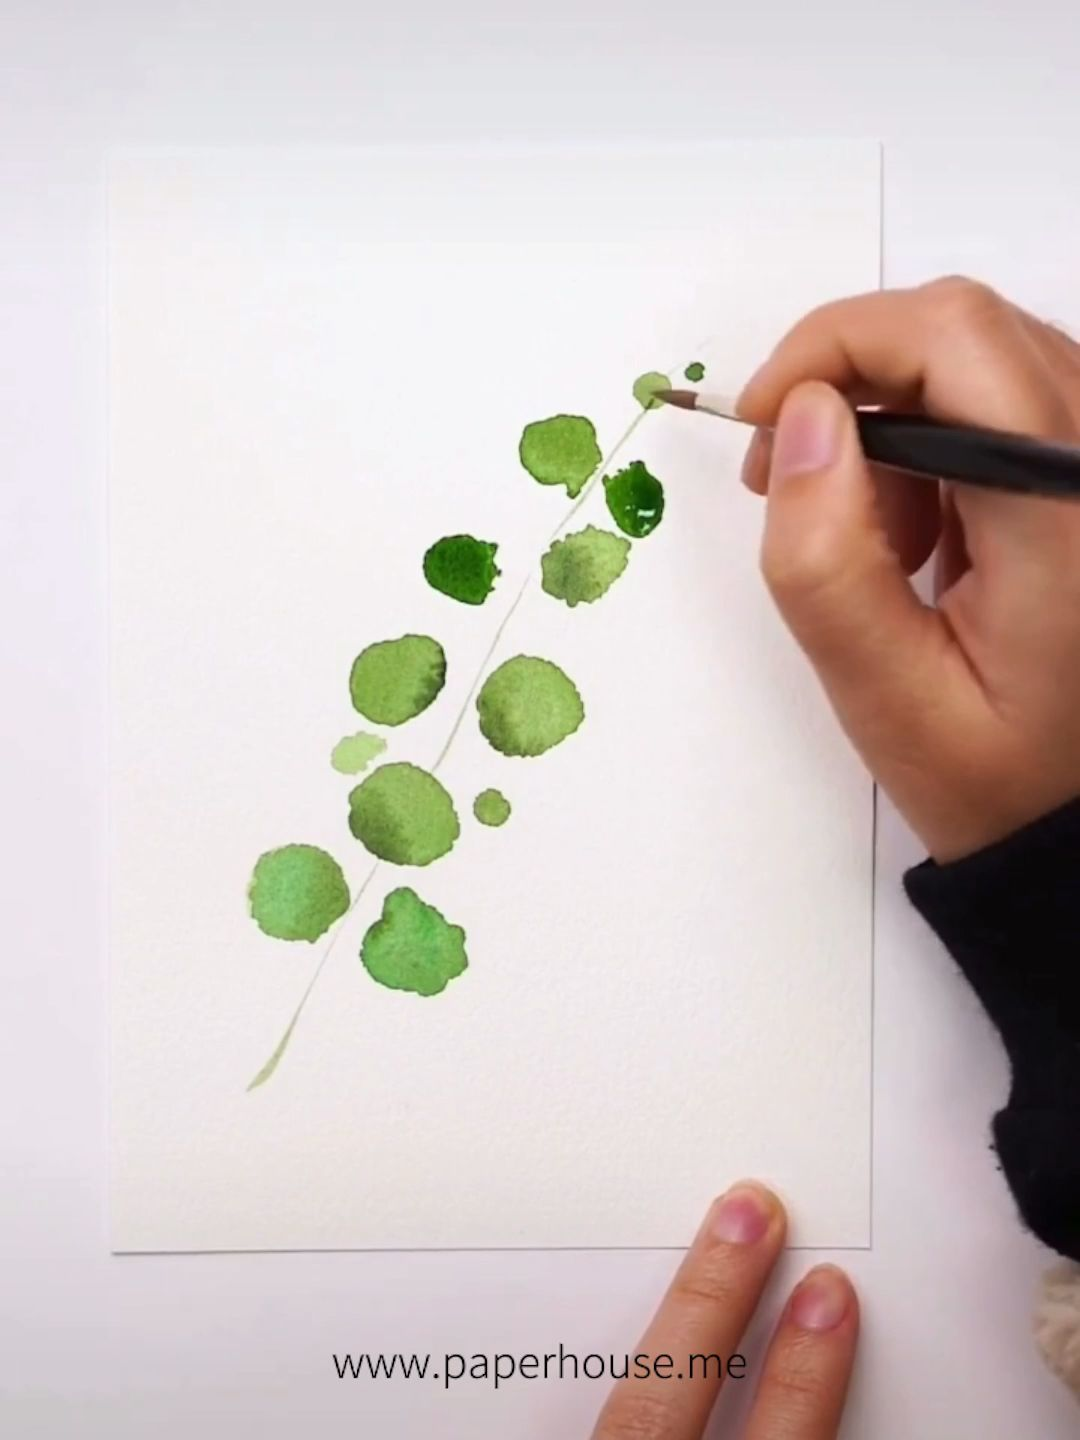 Plantes Aquarelle Art Www Paperhouse Meeconomisez 10 De Reduction